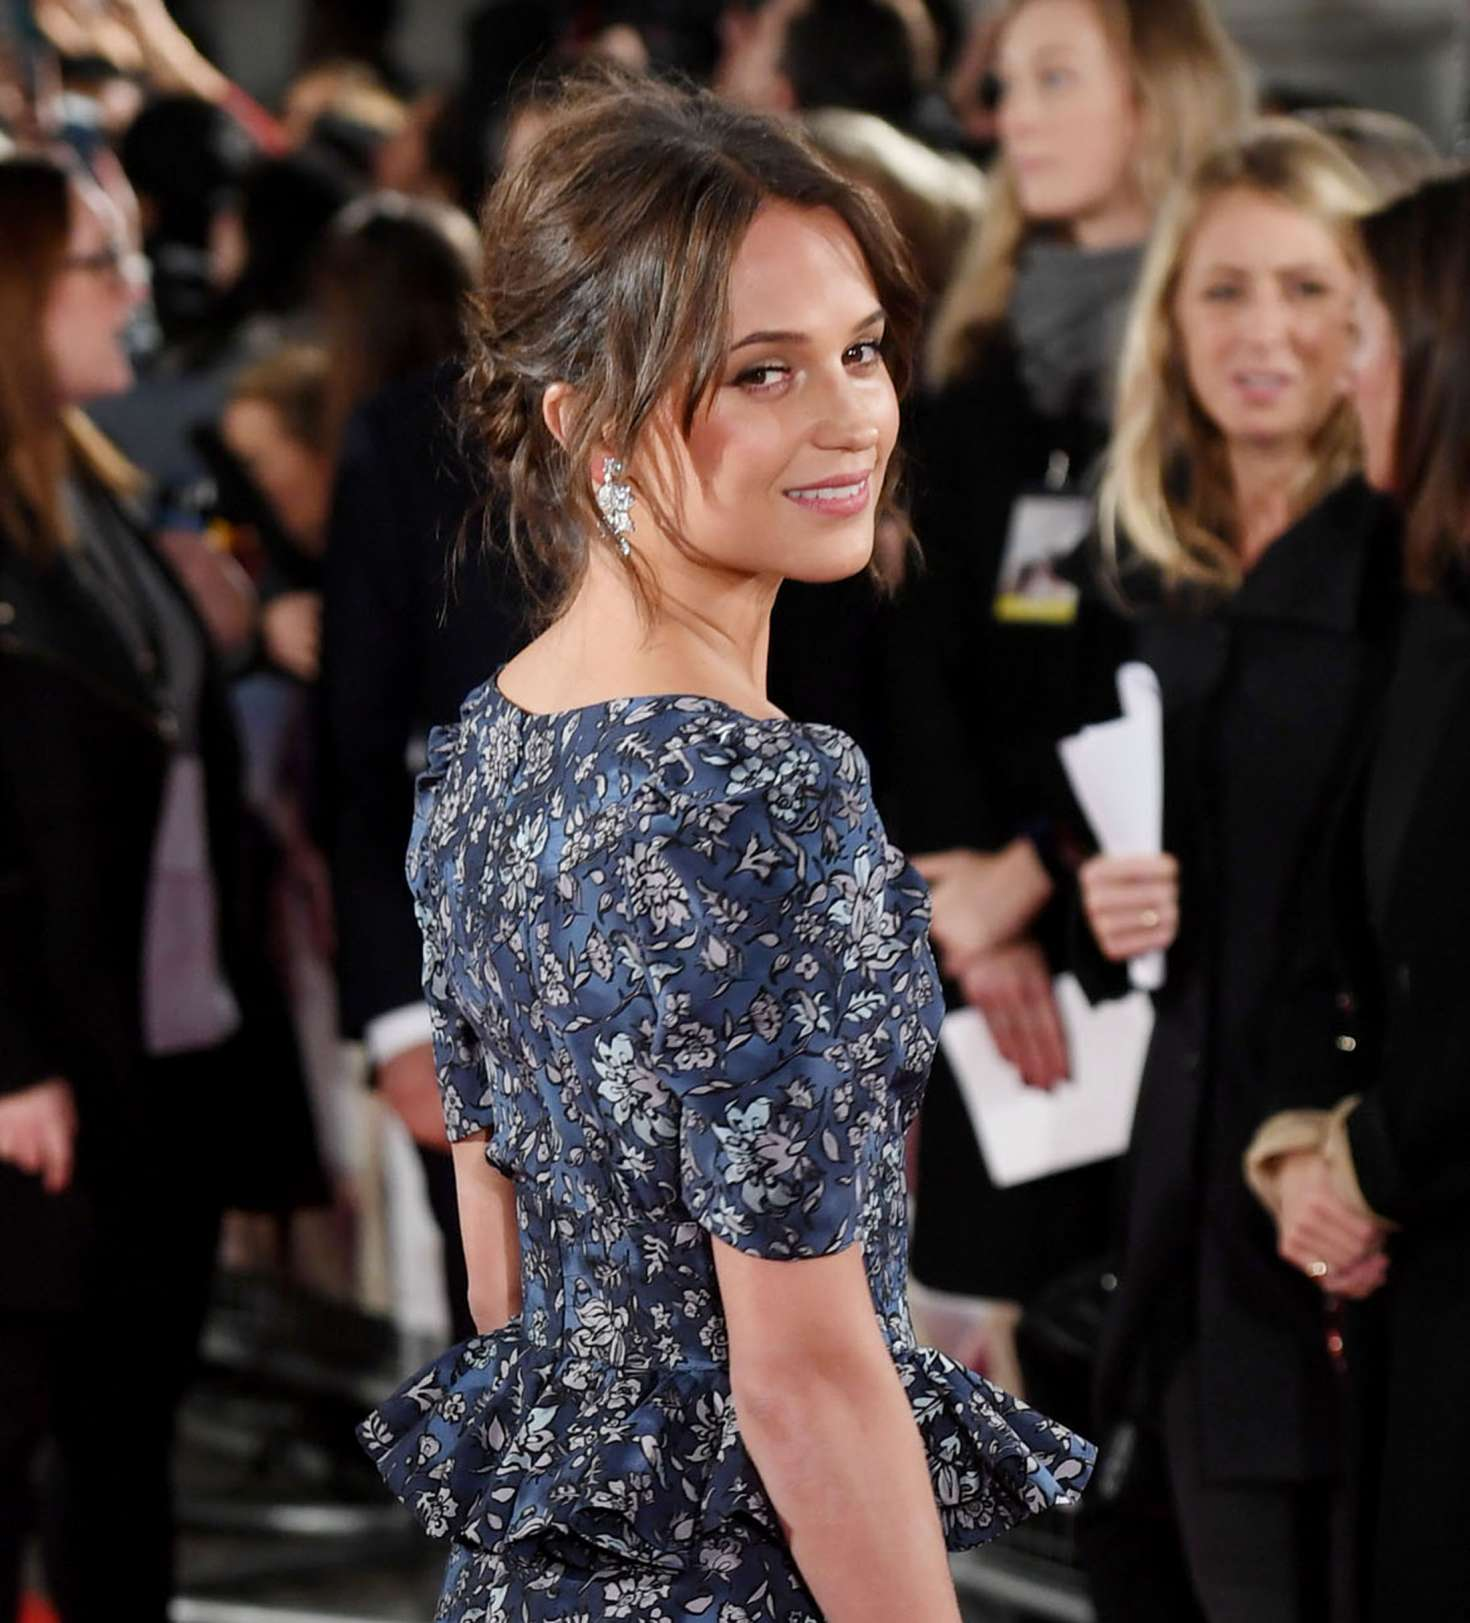 sc 1 st  GotCeleb & Alicia Vikander - The Light Between Oceans premiere in London